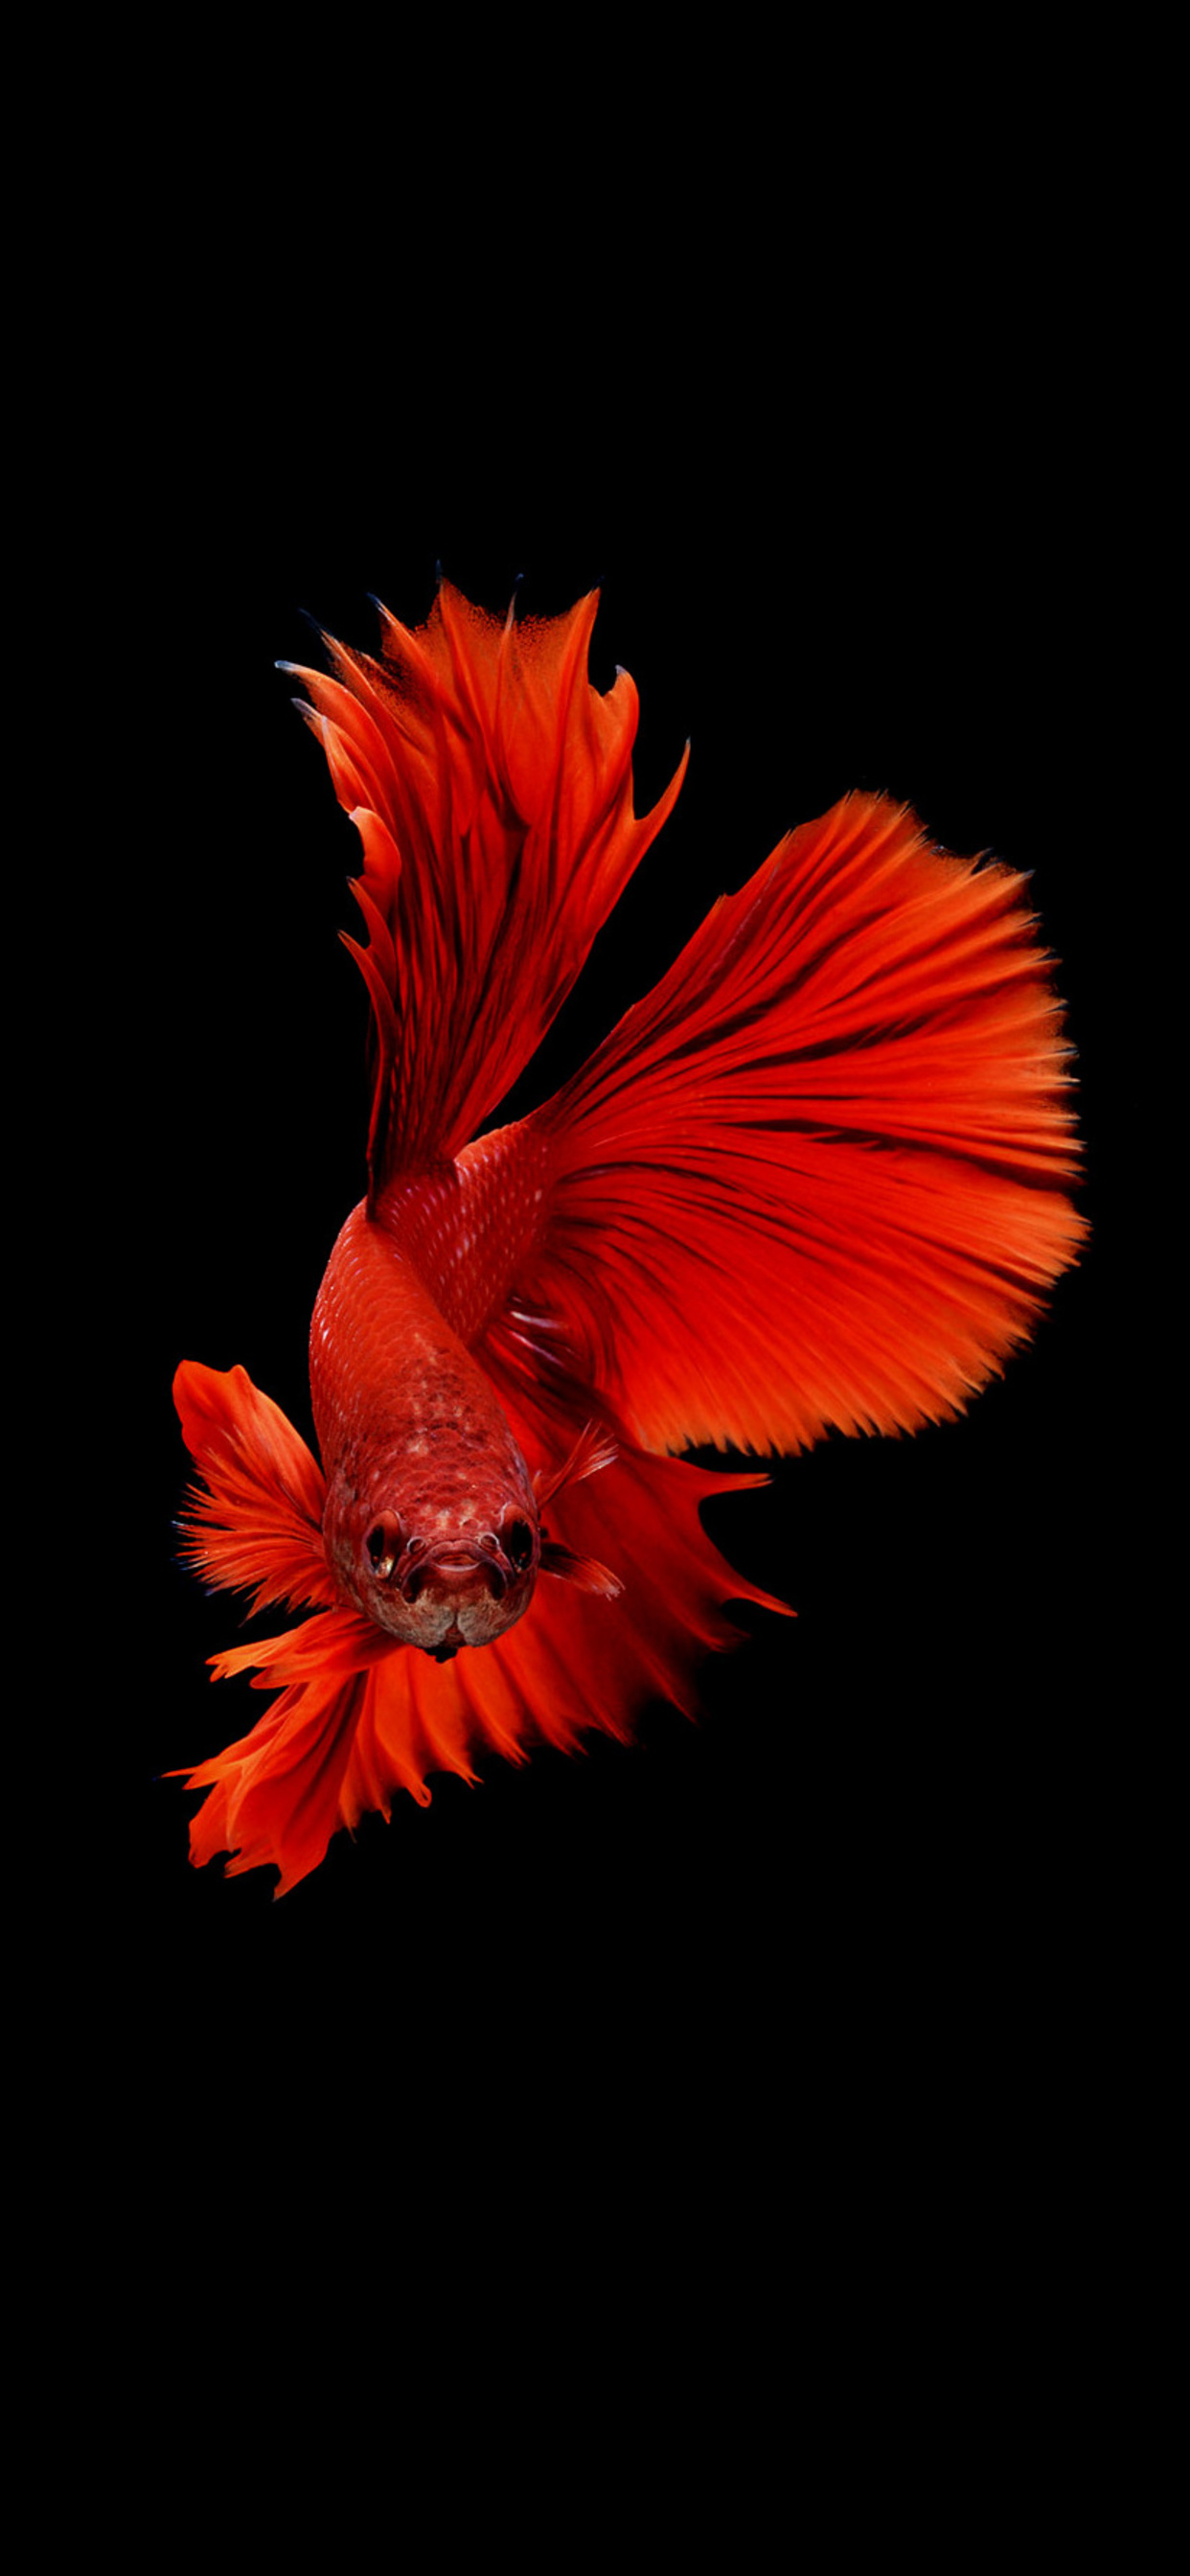 1242x2688 Betta Fish Iphone Xs Max Hd 4k Wallpapers Images